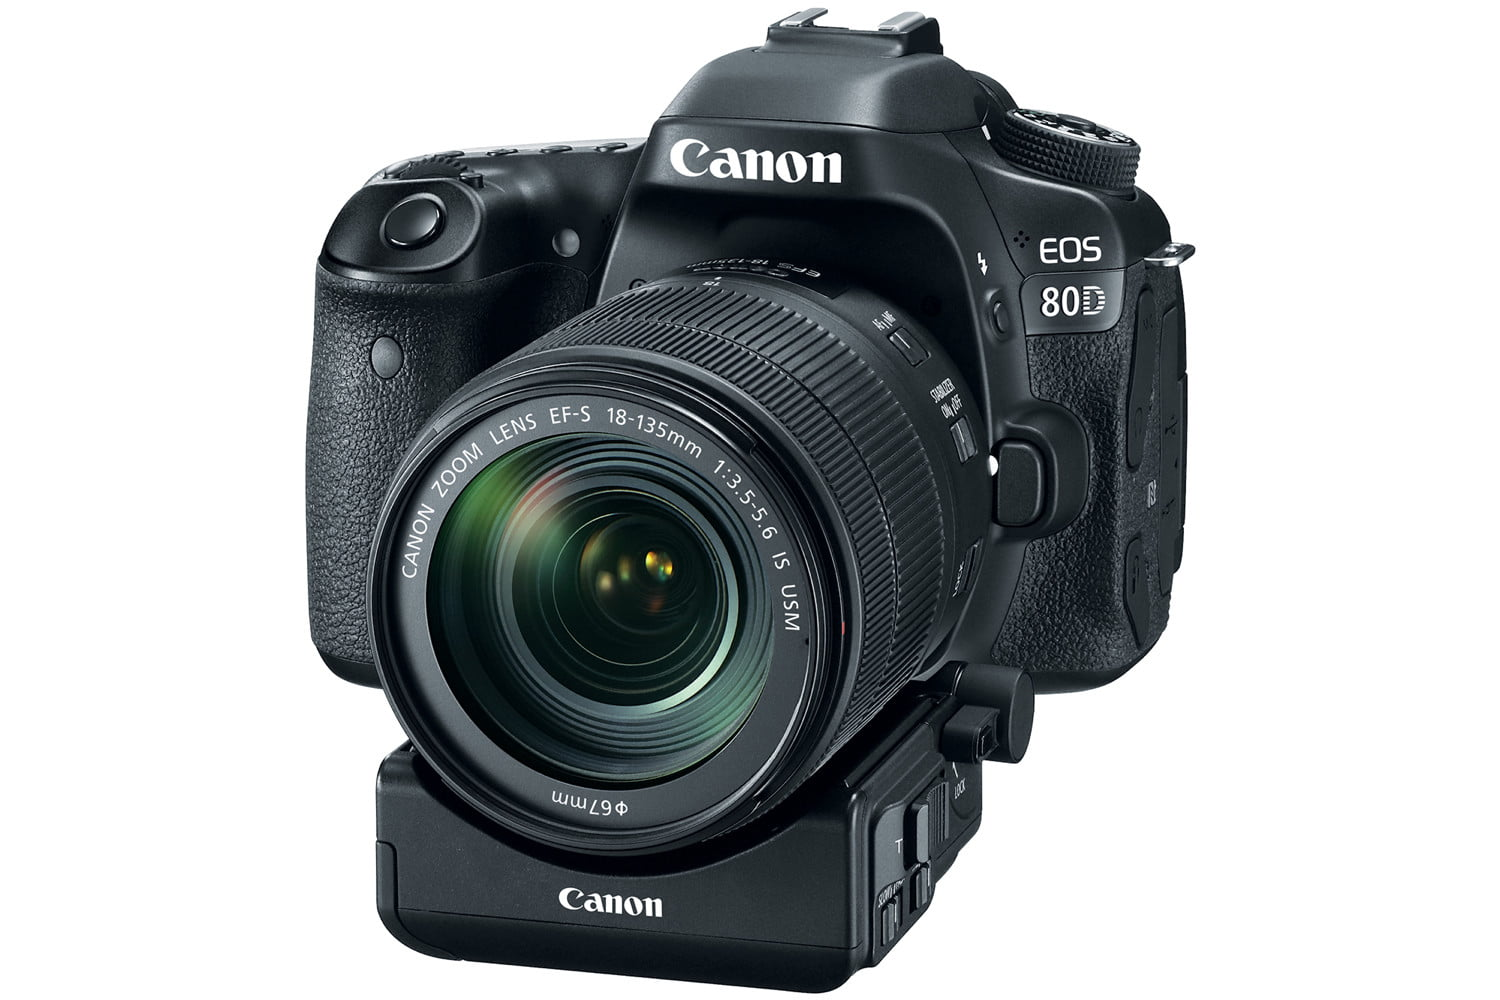 photos or videos canon s new midrange 80d dslr caters to both. Black Bedroom Furniture Sets. Home Design Ideas